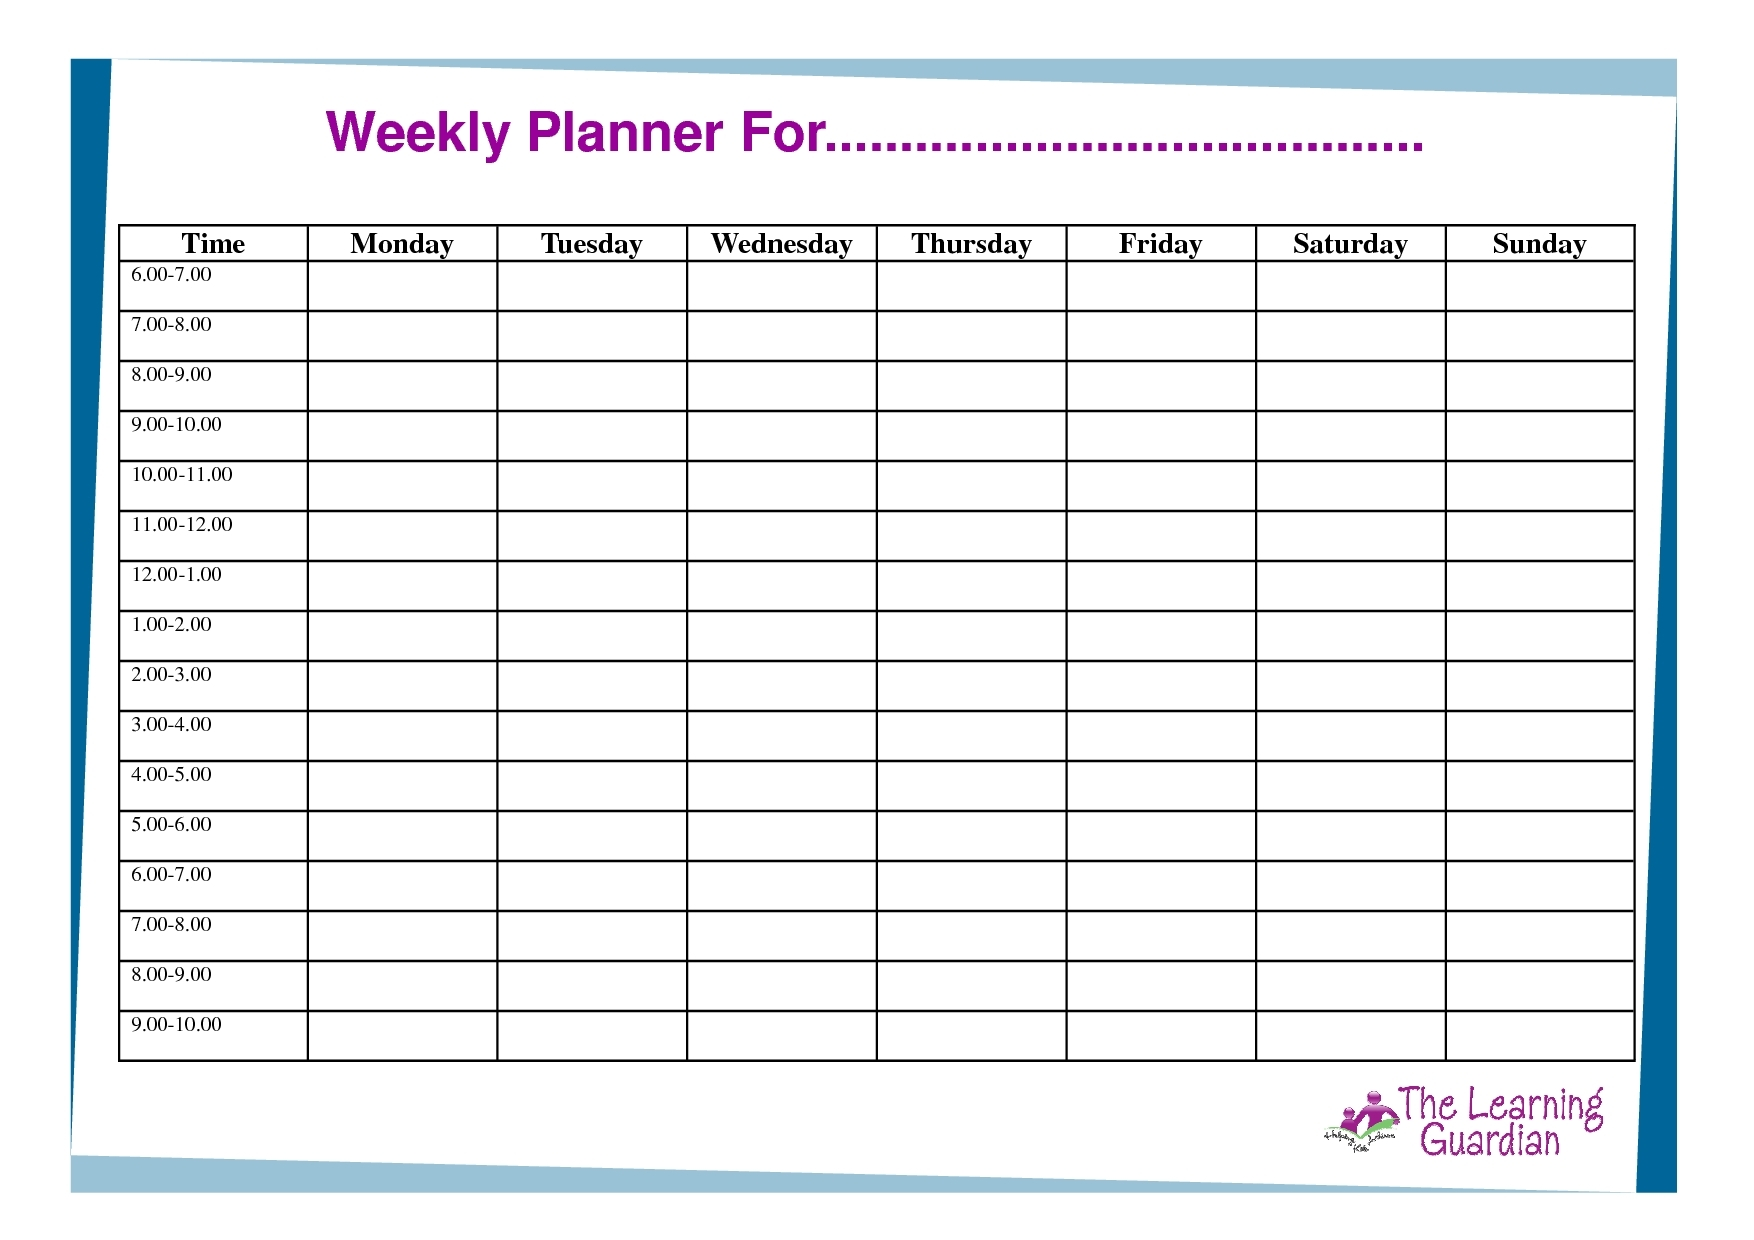 Free Printable Weekly Calendar Template Blank Pdf Week | Smorad intended for Blank Schedule Sheet With Times